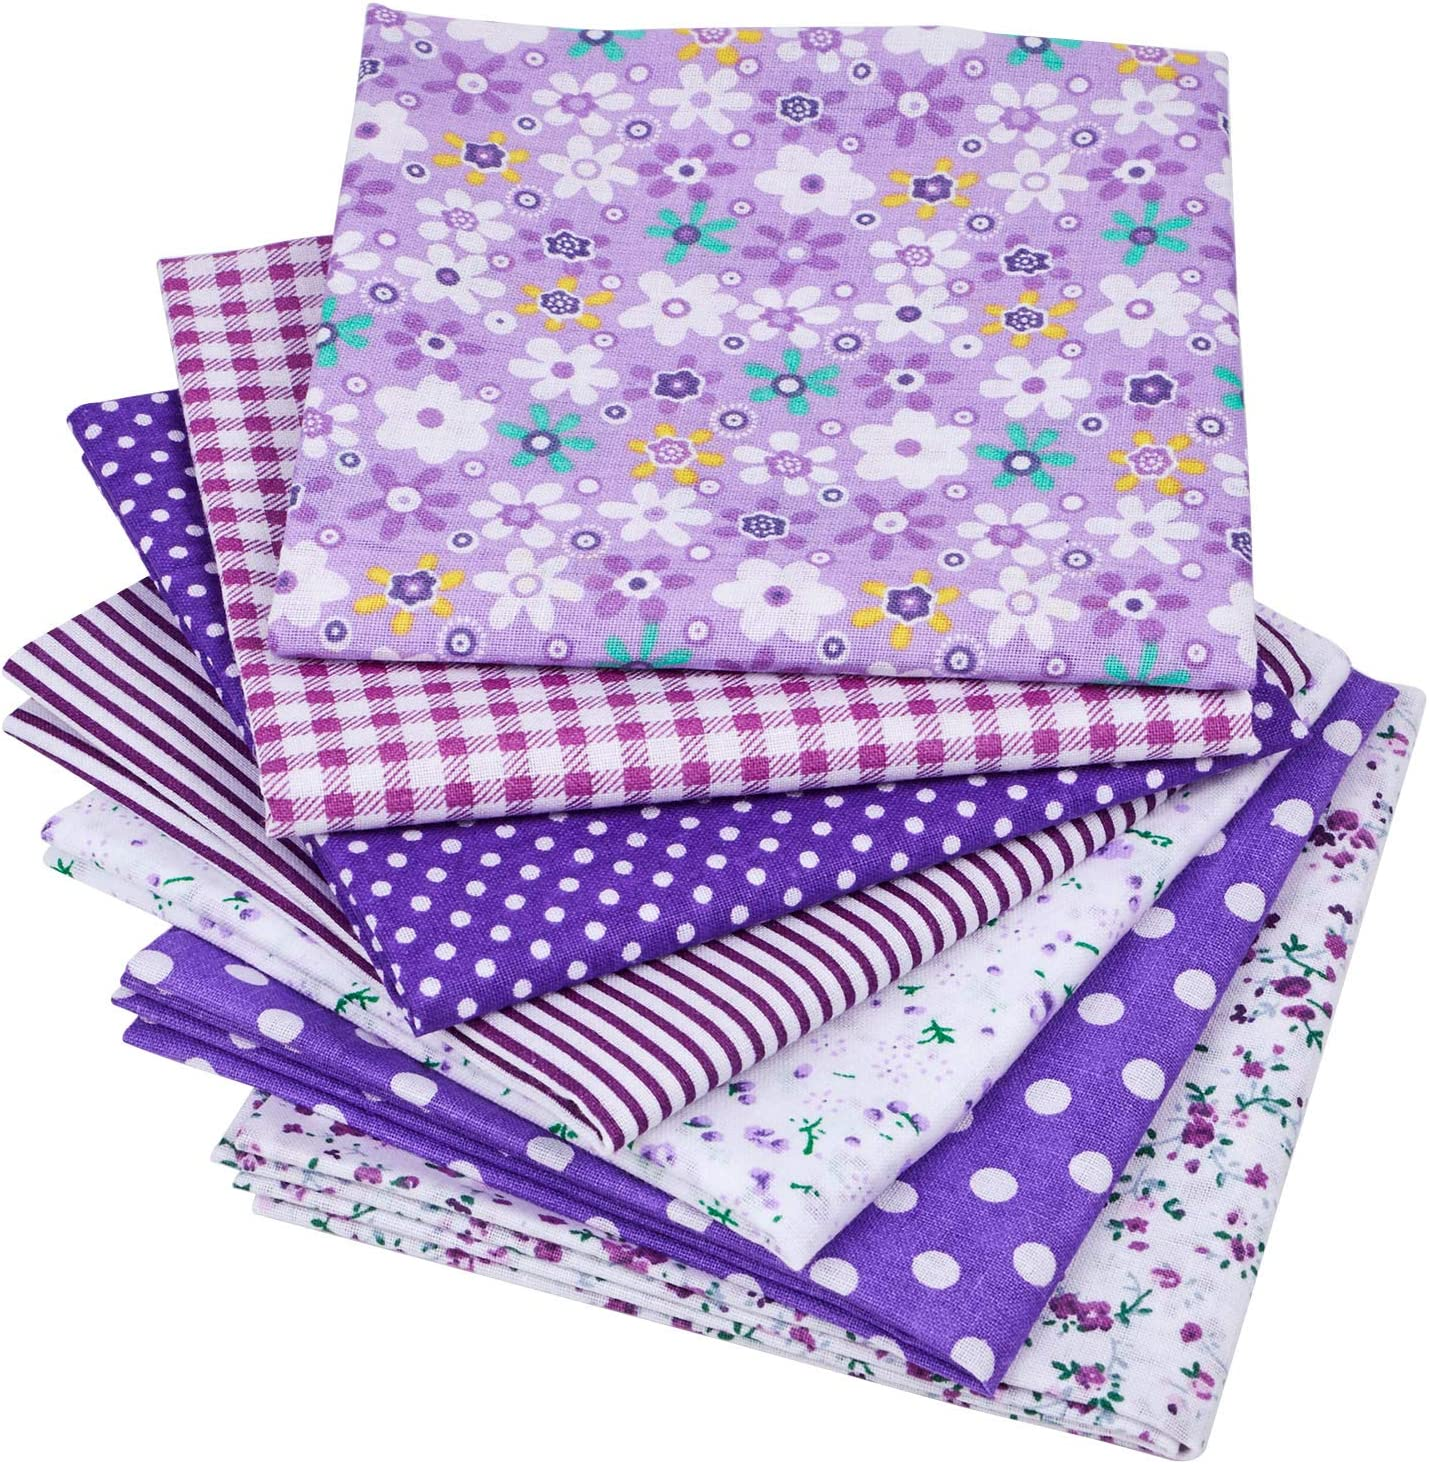 7Pcs 20 x 20 Floral Cotton Fabric DIY Mask Making Supplies Quilting Patchwork Fabric Fat Quarter Bundles DIY for Quilting Patchwork Cushions Cotton Fabric for Patchwork